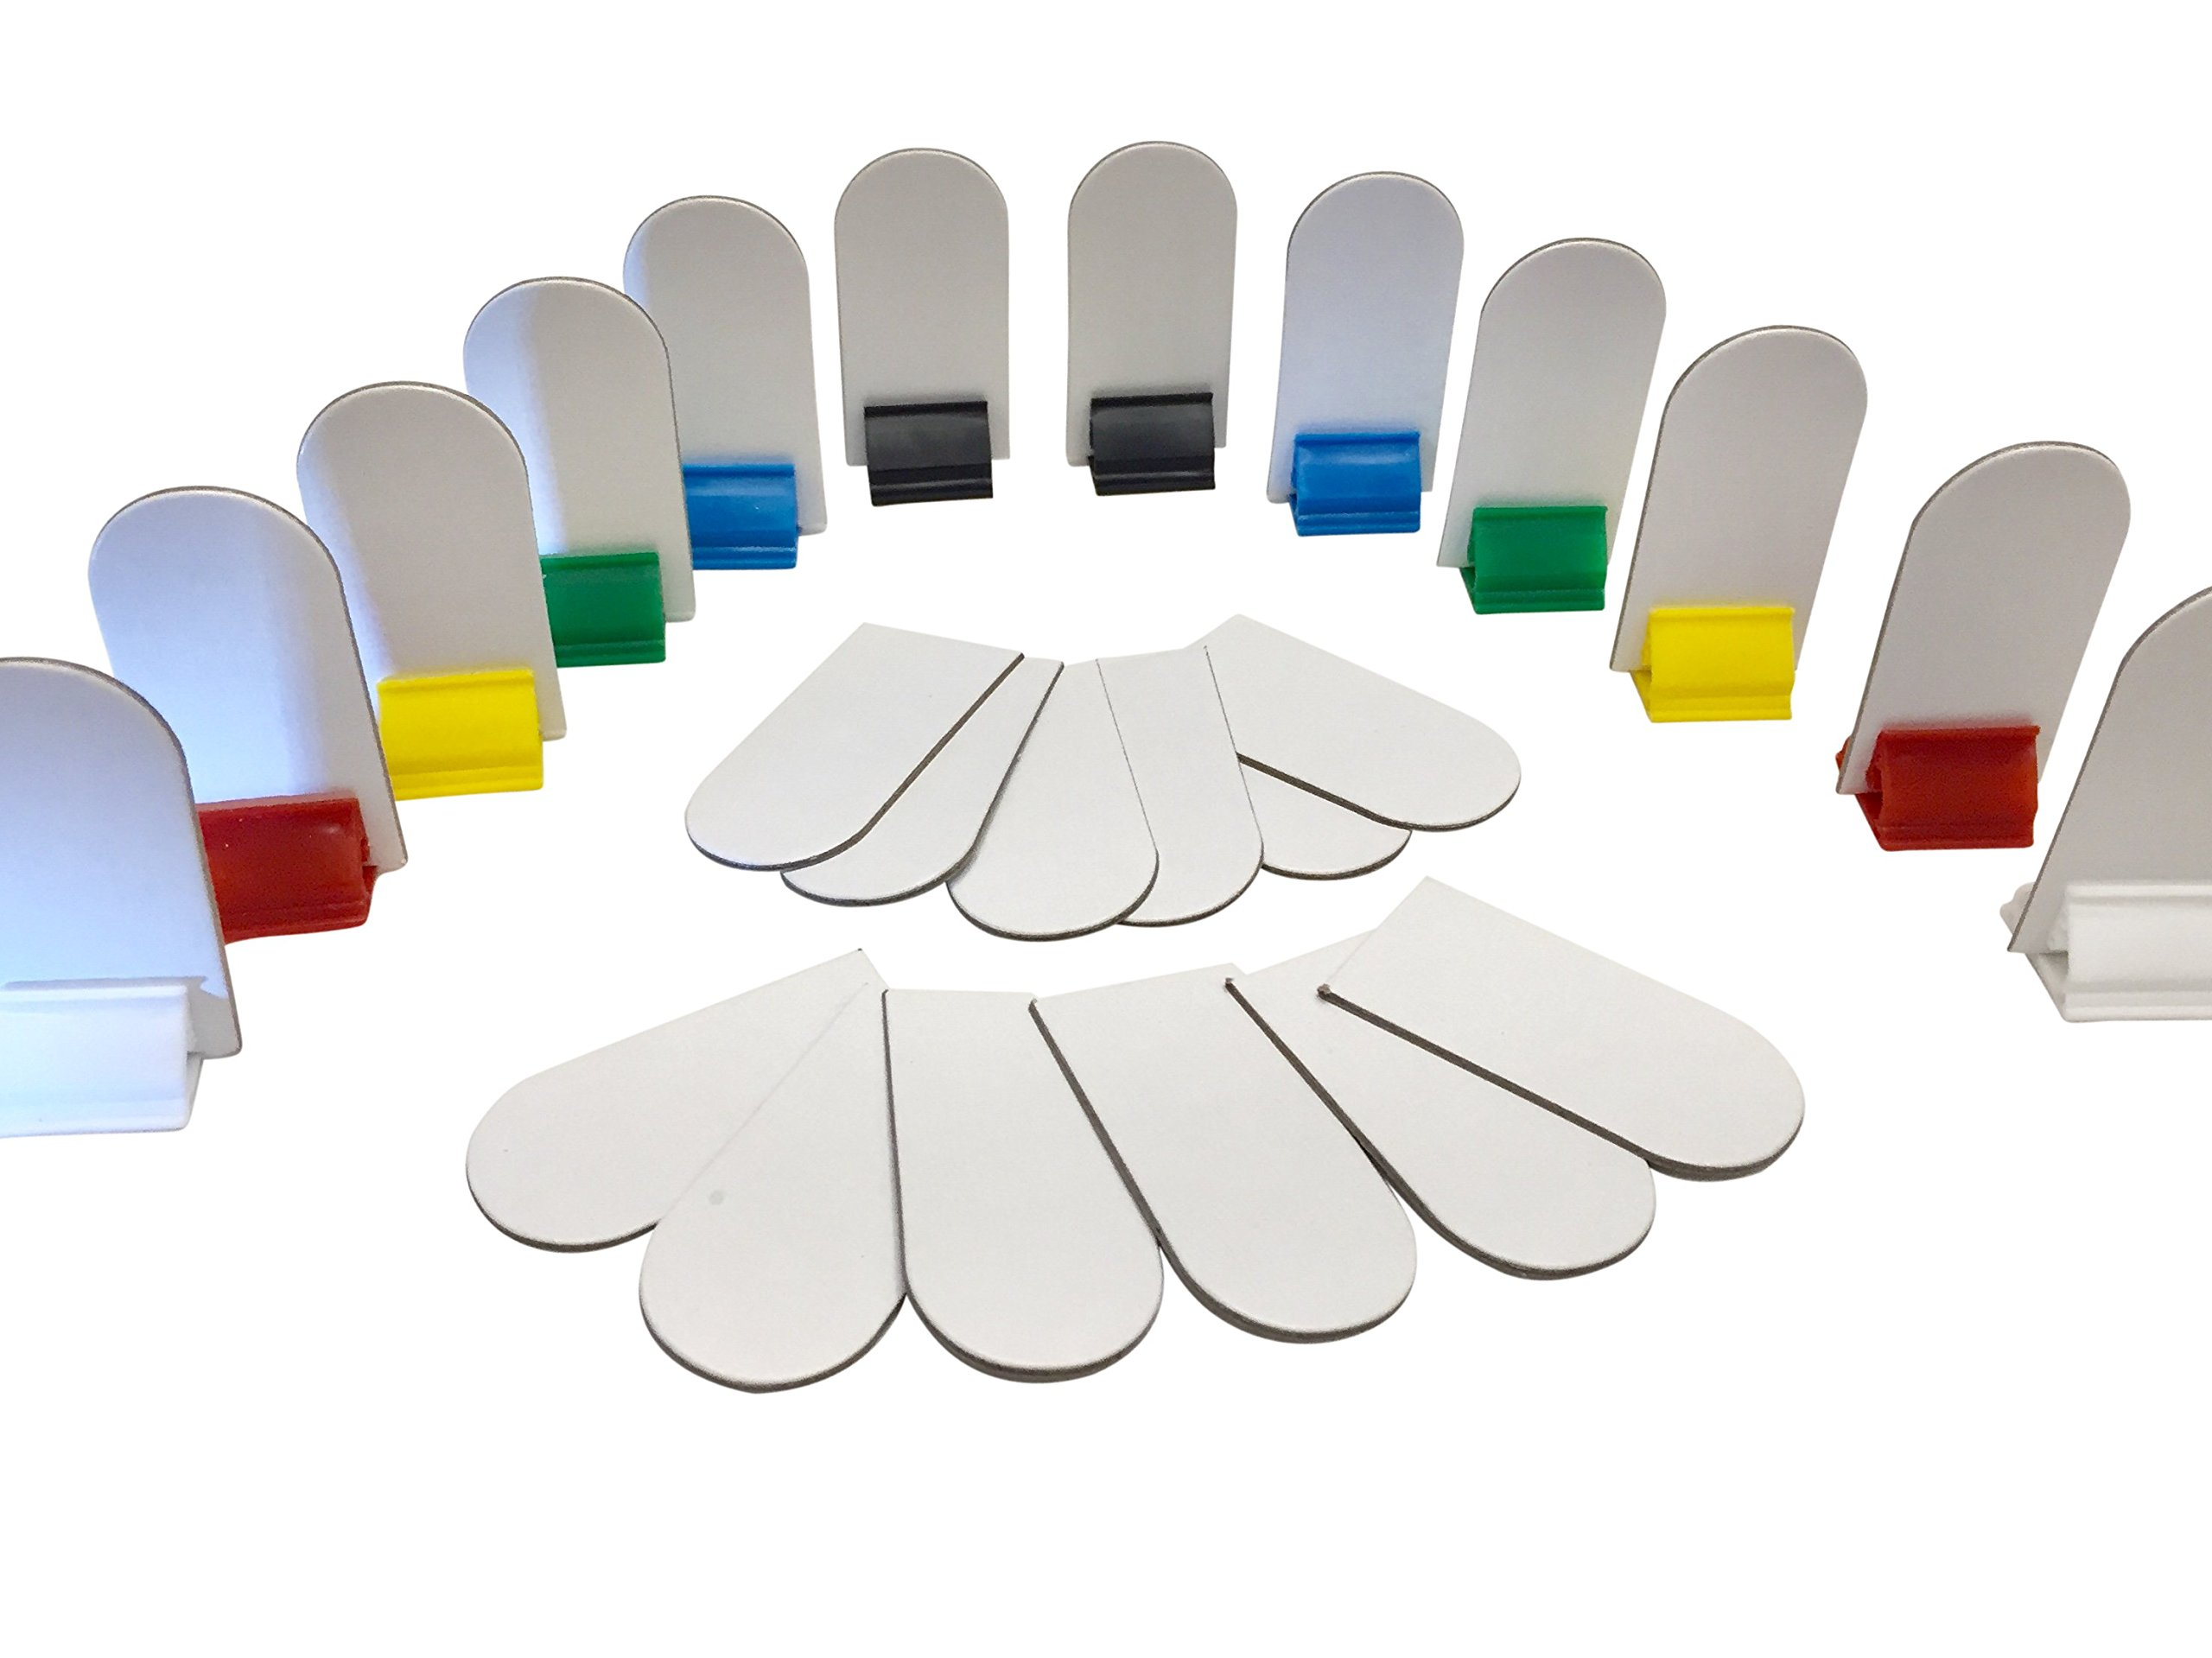 Game Board Markers | Board Game Card Stand - 12 Stands Plus 24 White Die Cut Cards DIY Game Board Pieces - Yardware etcetera